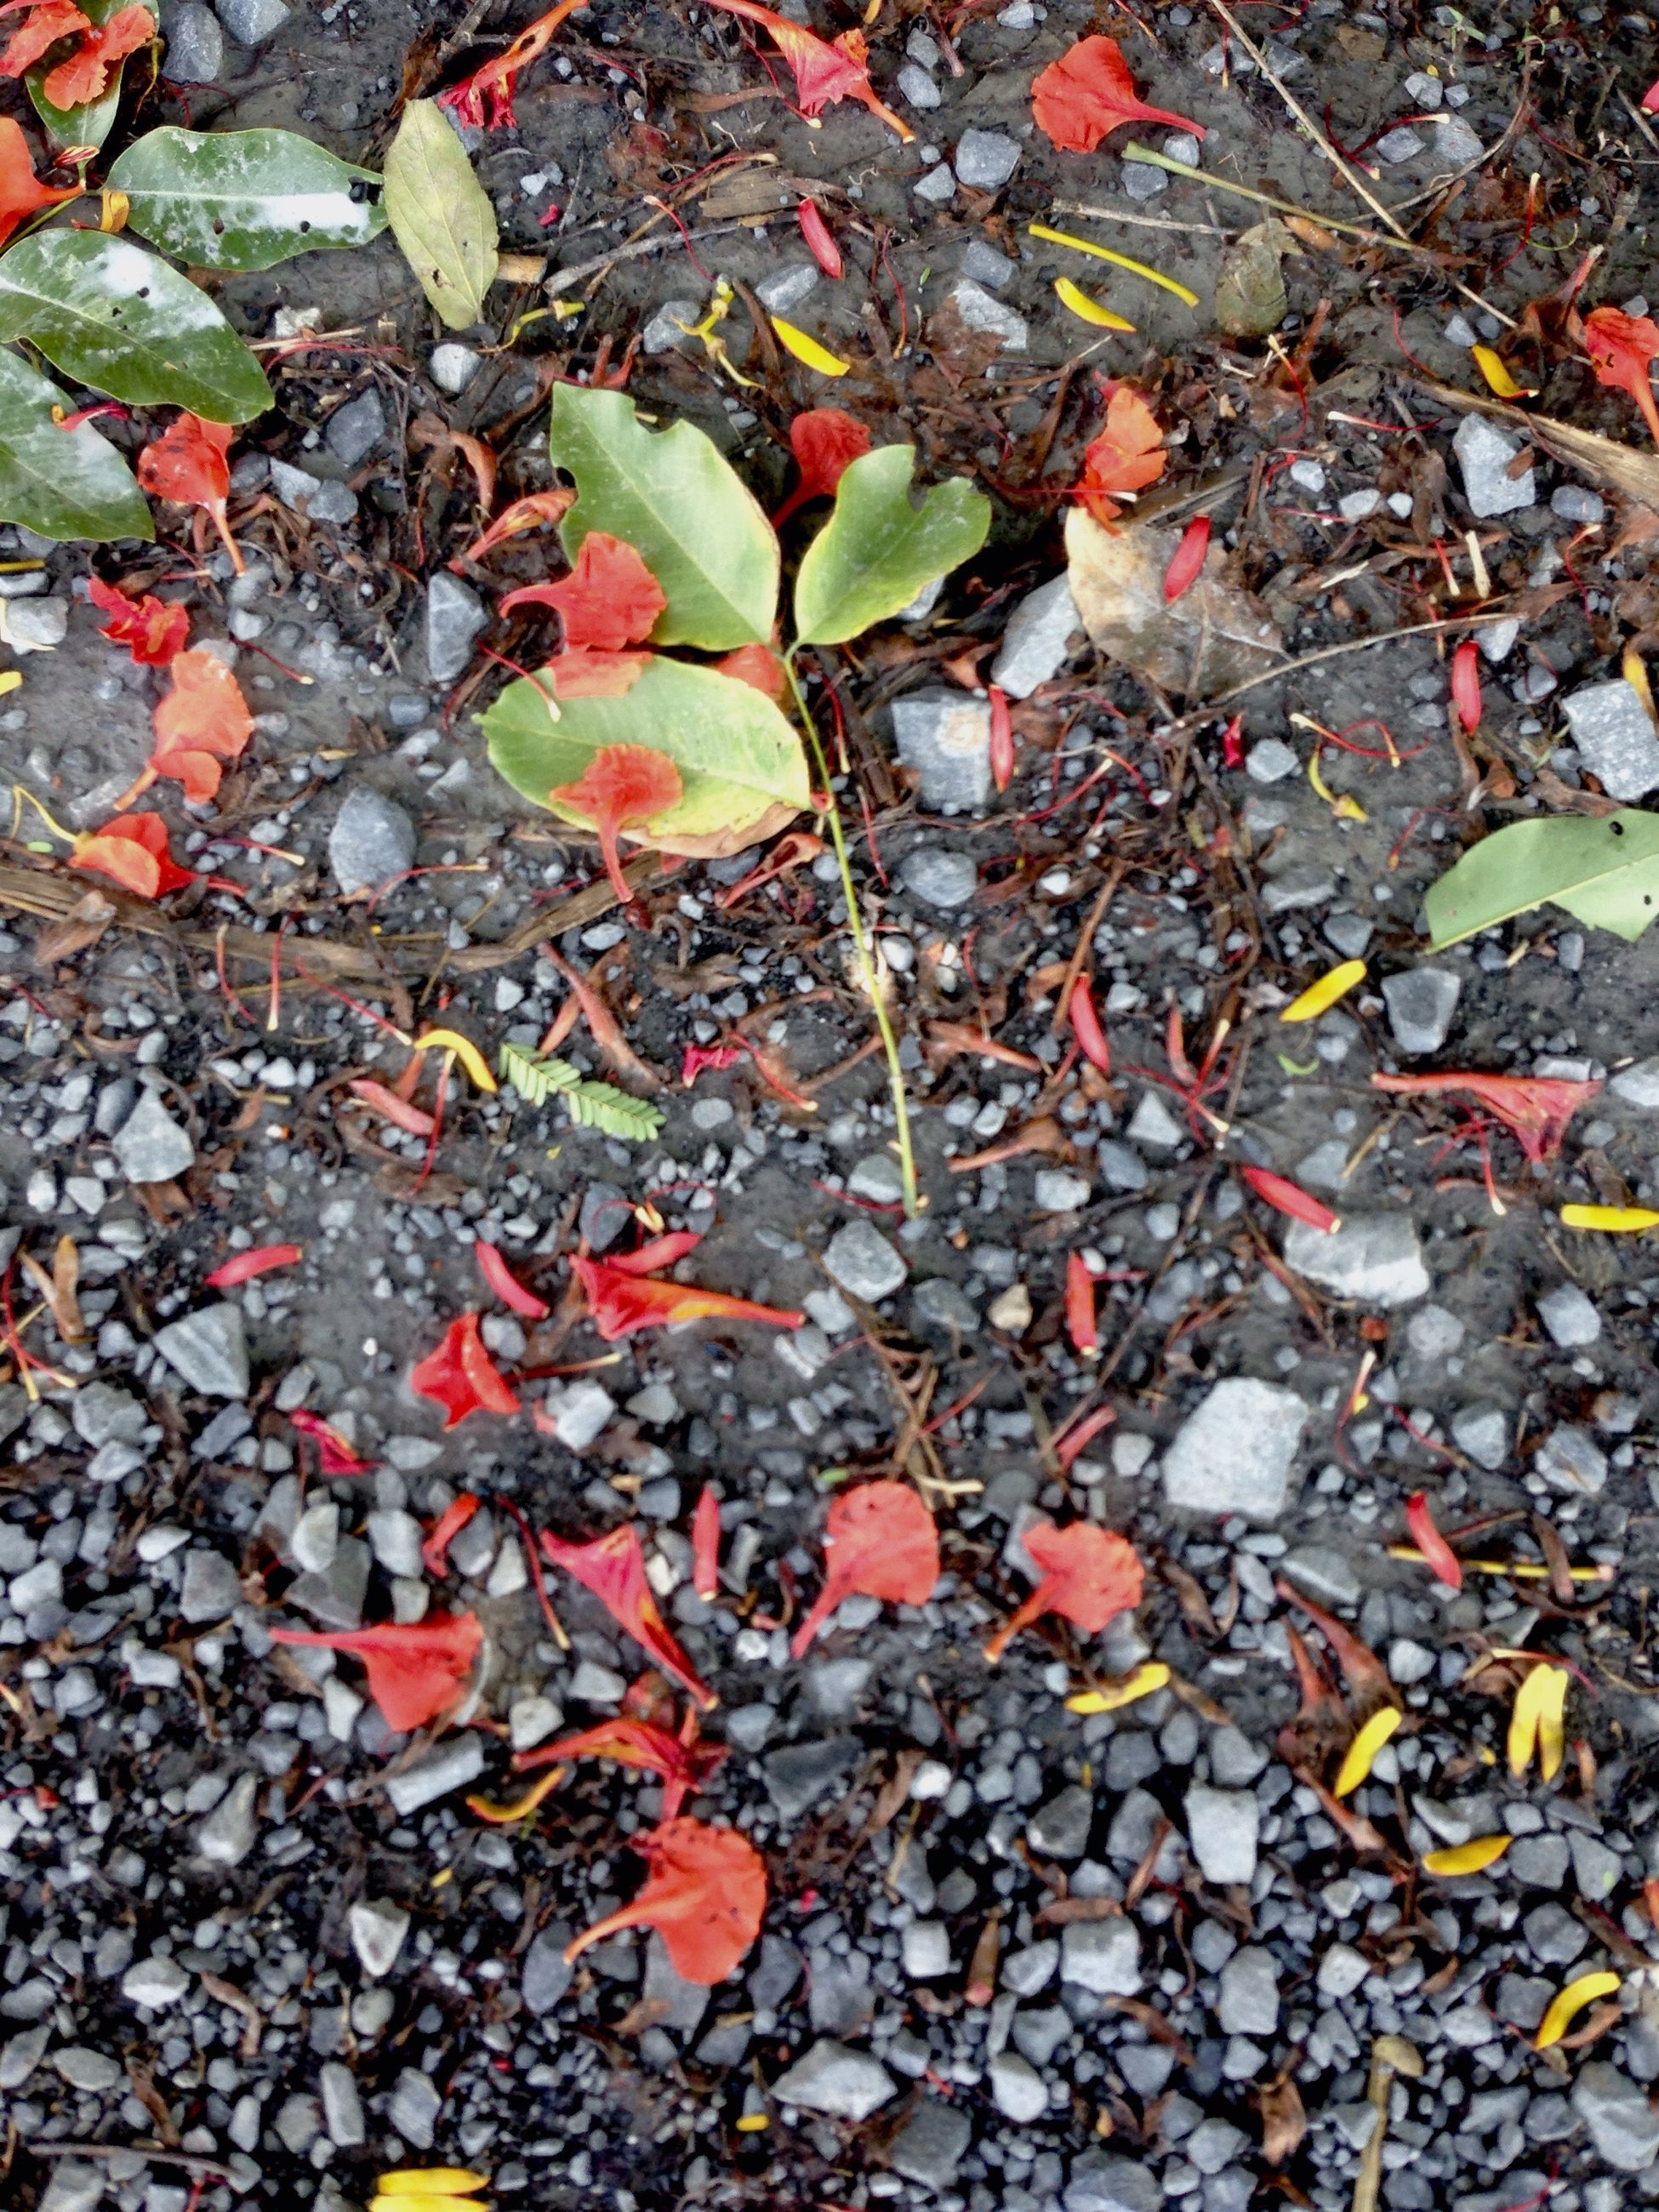 autumn, leaf, change, high angle view, fallen, season, dry, leaves, nature, stone - object, abundance, falling, day, outdoors, ground, pebble, tranquility, field, large group of objects, beauty in nature